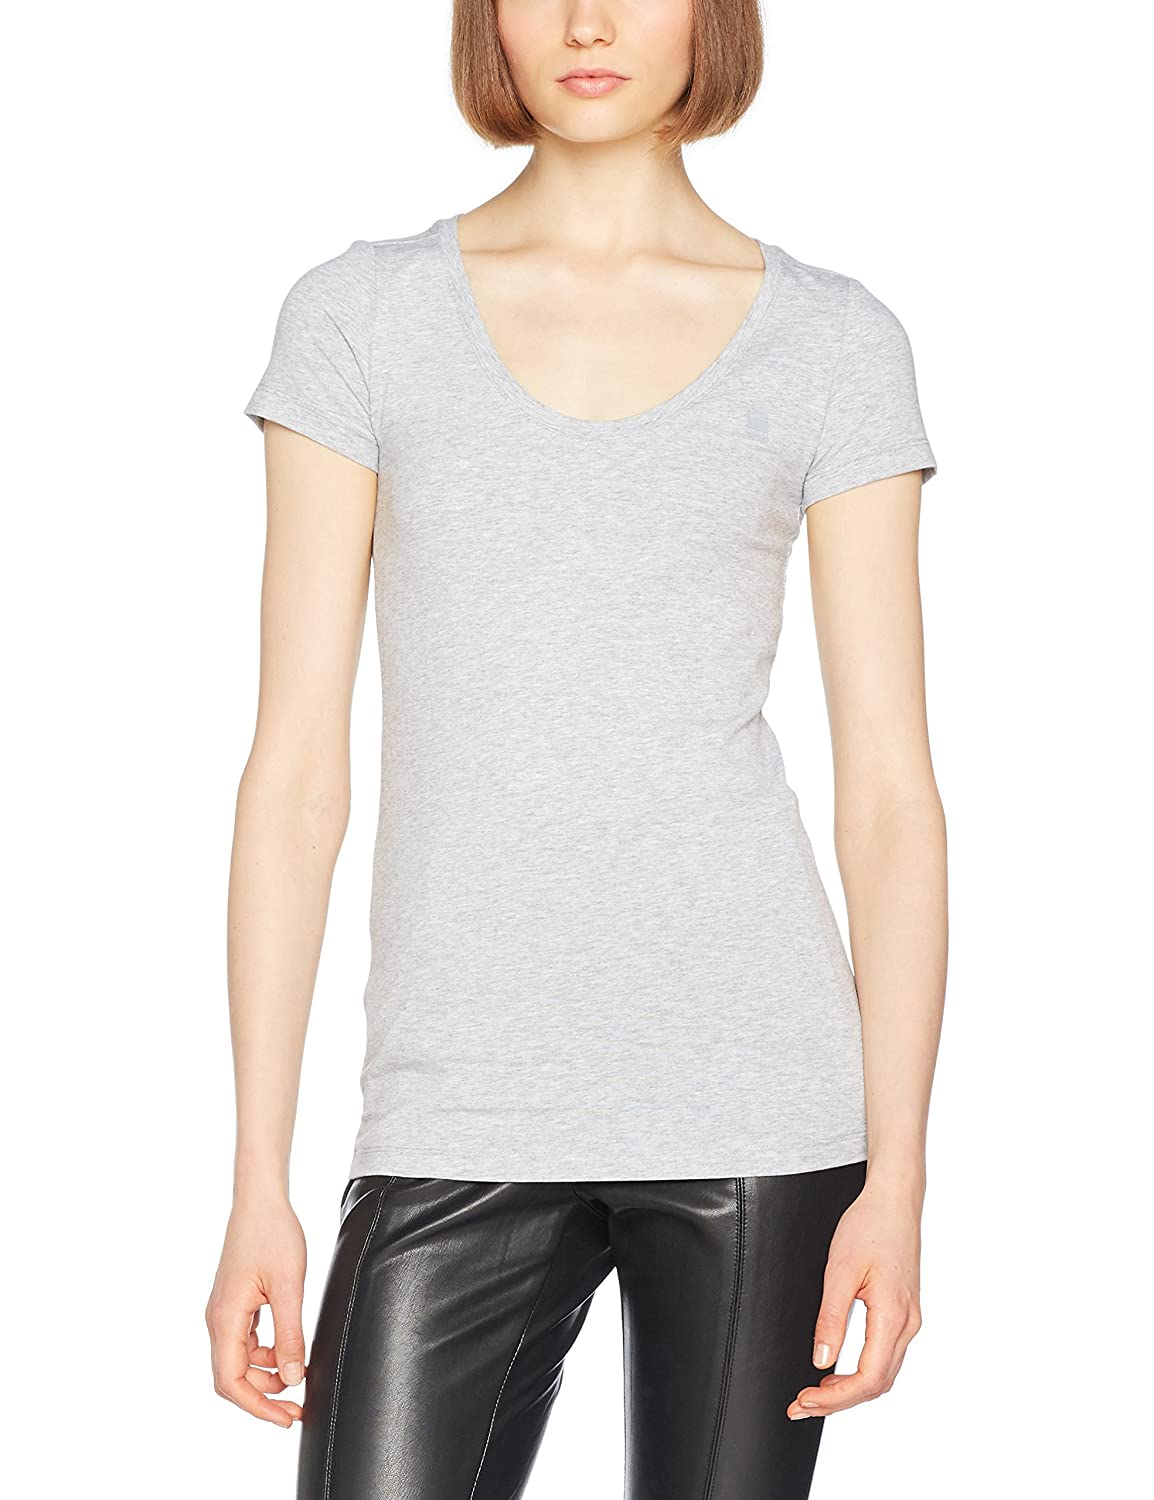 5f1ce57ac987a2 G-STAR RAW Damen T-Shirt Base R T Wmn Cap SL hot sale 2017 - pwc ...